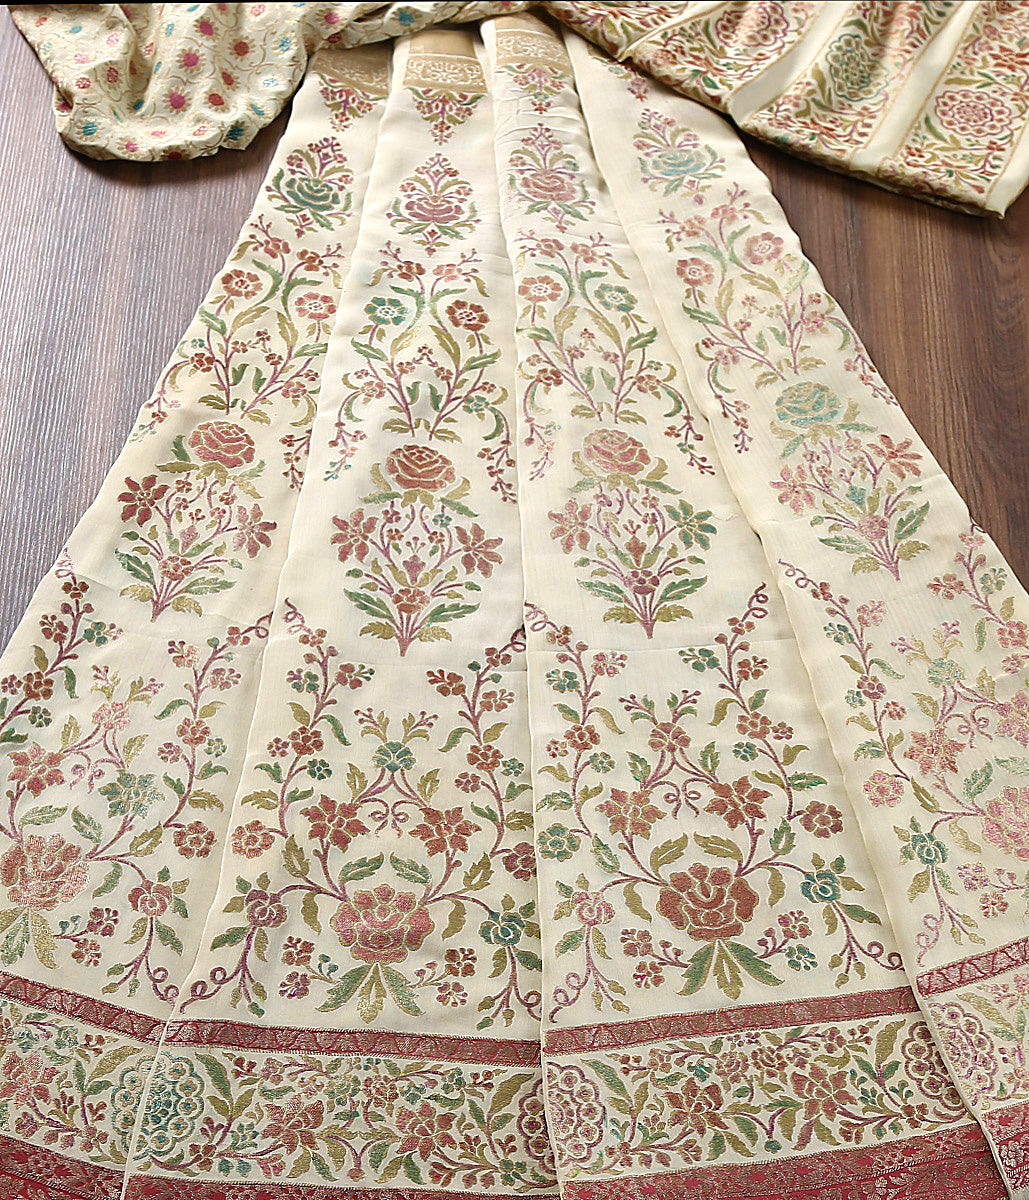 Handwoven Banarasi Beige Hand Brush Painted Lehenga in pure georgette